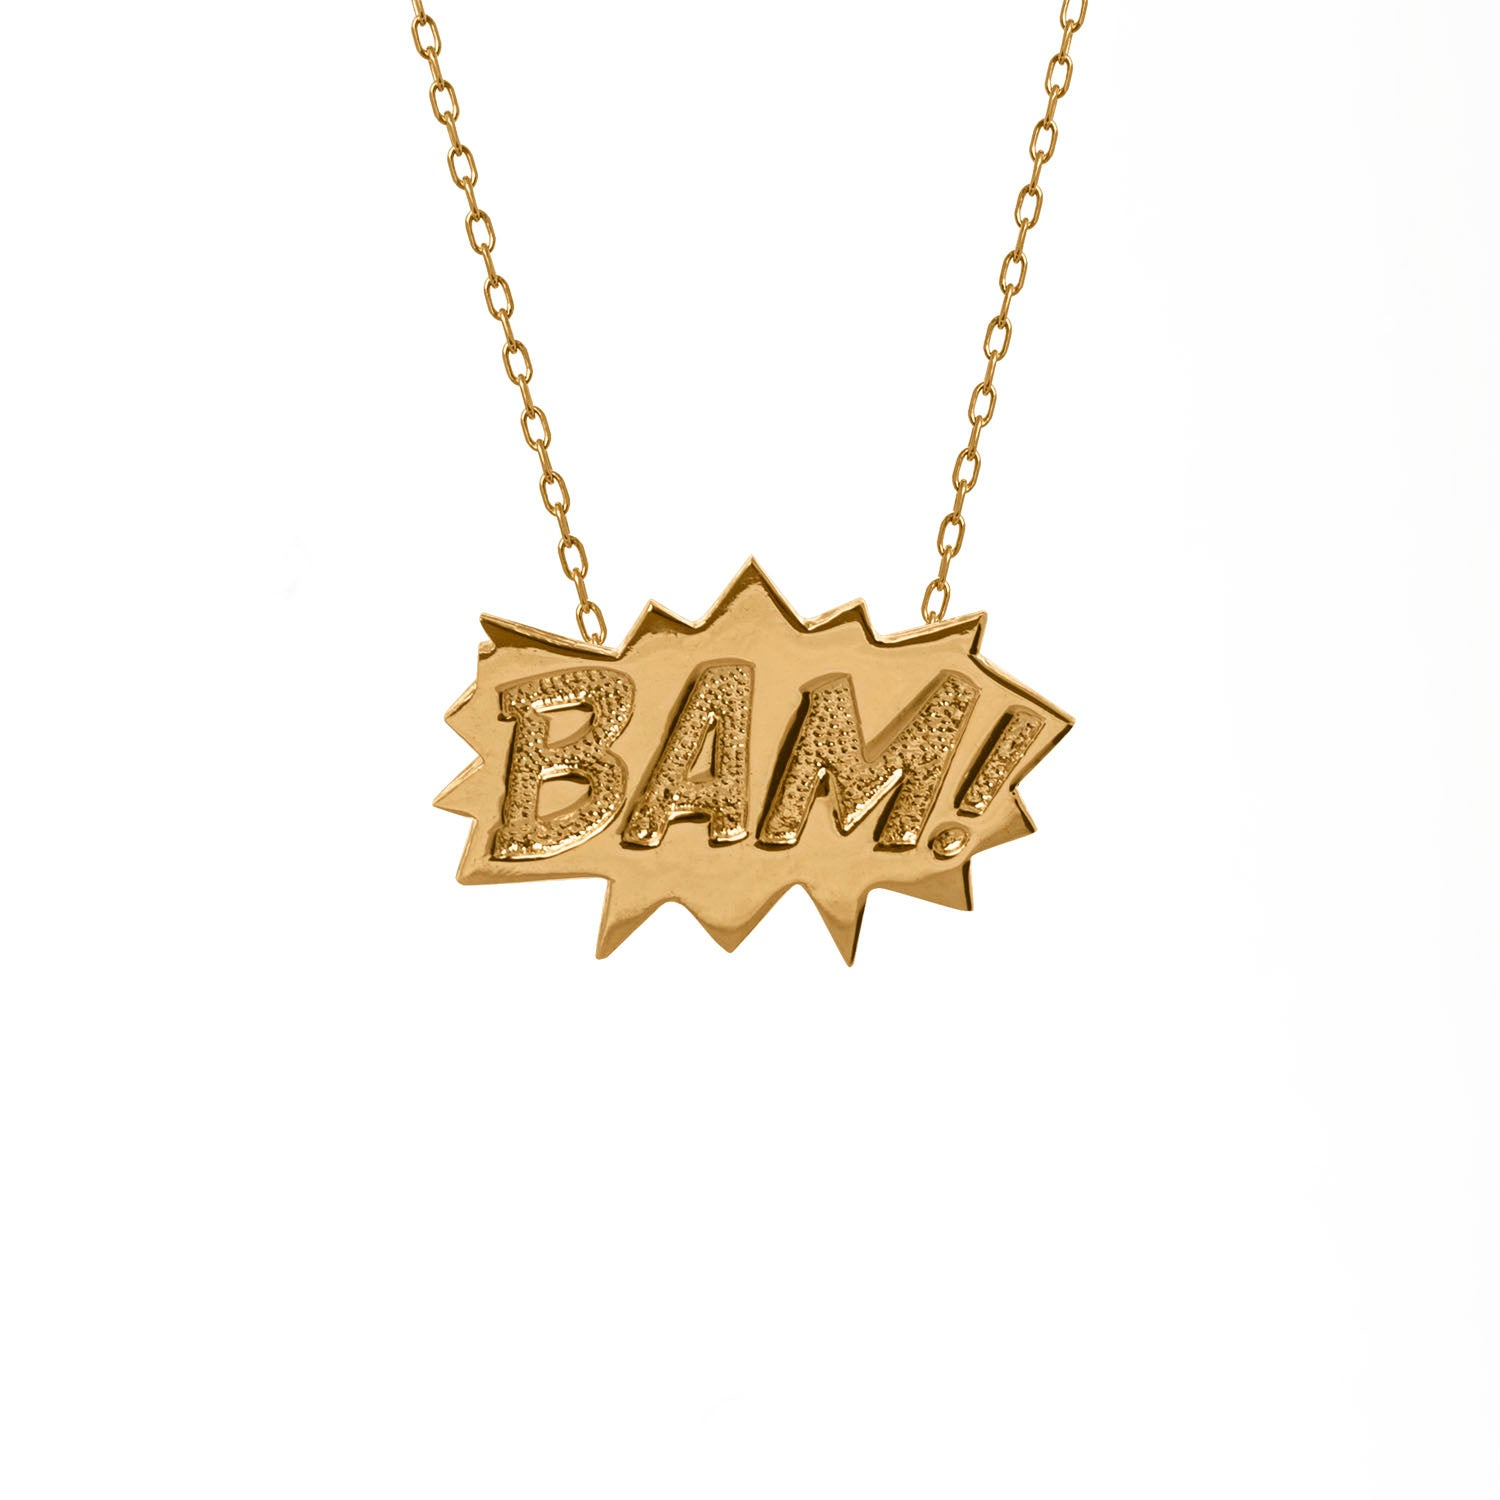 BAM! Pendant Large in sterling silver